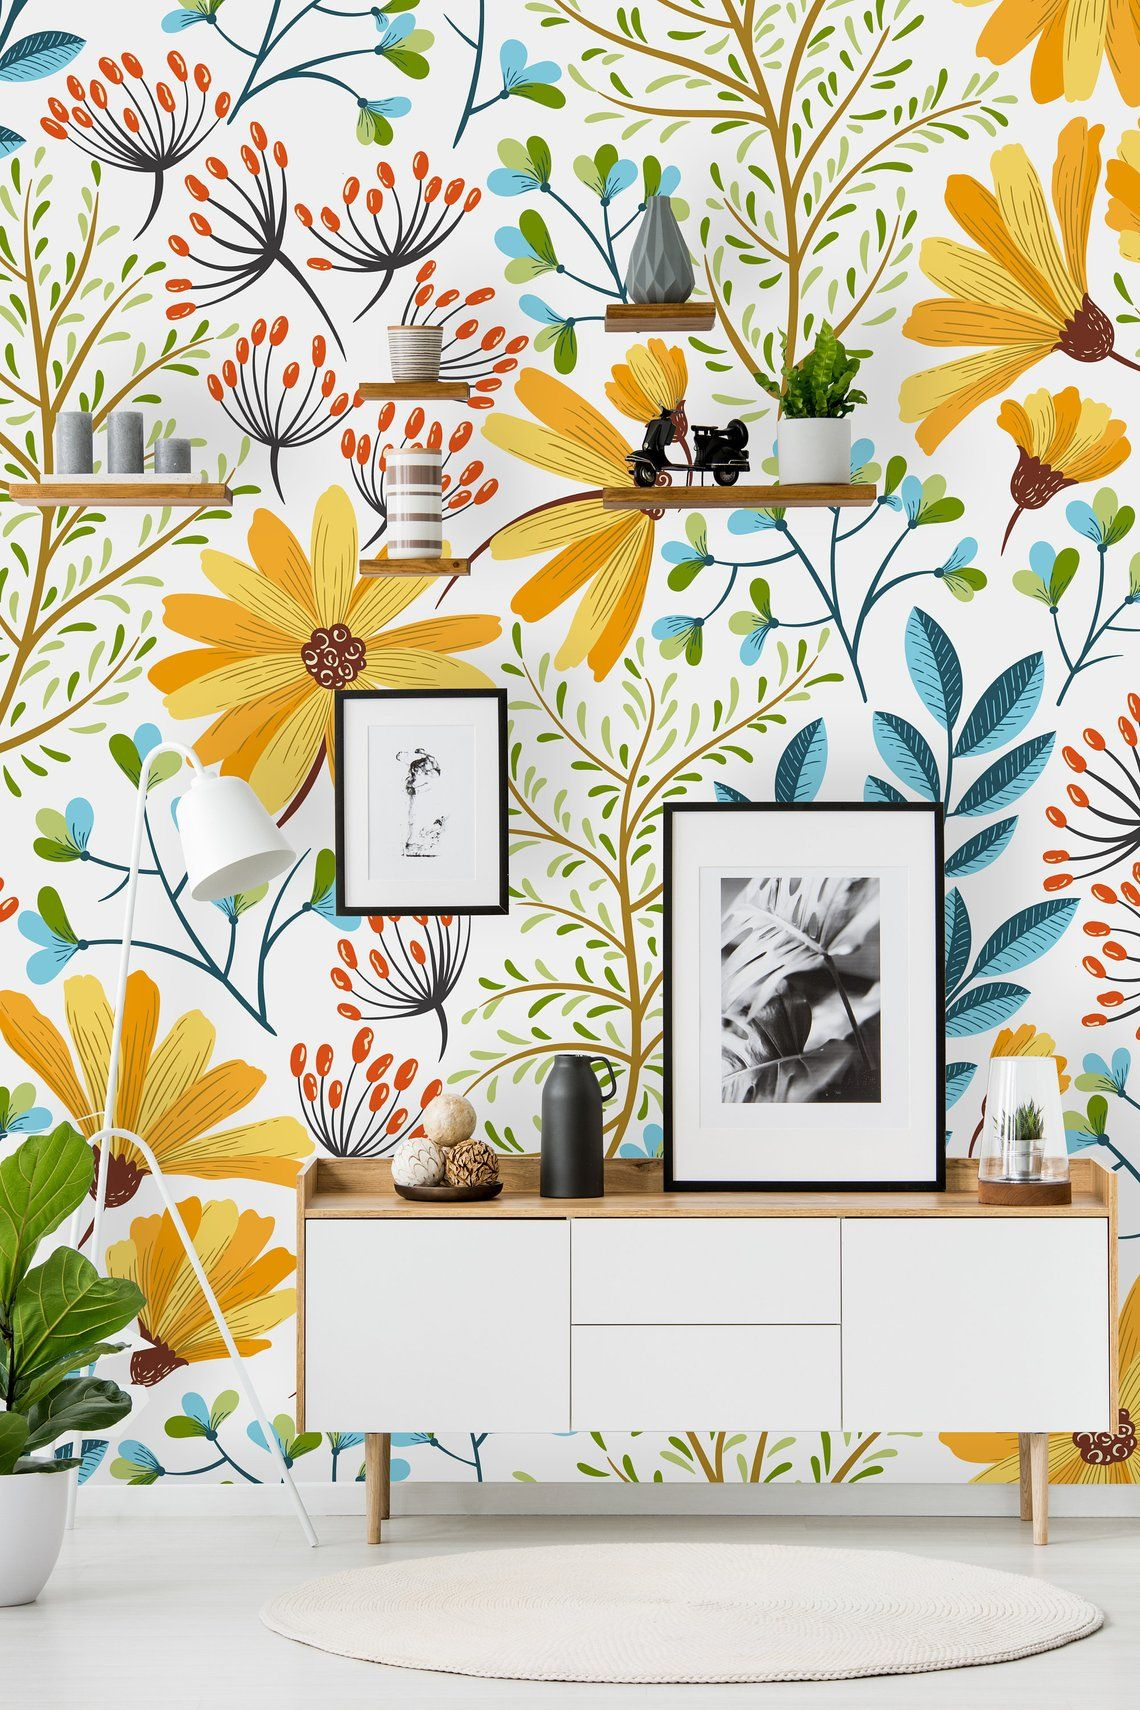 Removable Wallpaper Peel And Stick Wallpaper Self Adhesive Etsy Removable Wallpaper Peel And Stick Wallpaper Boho Wallpaper